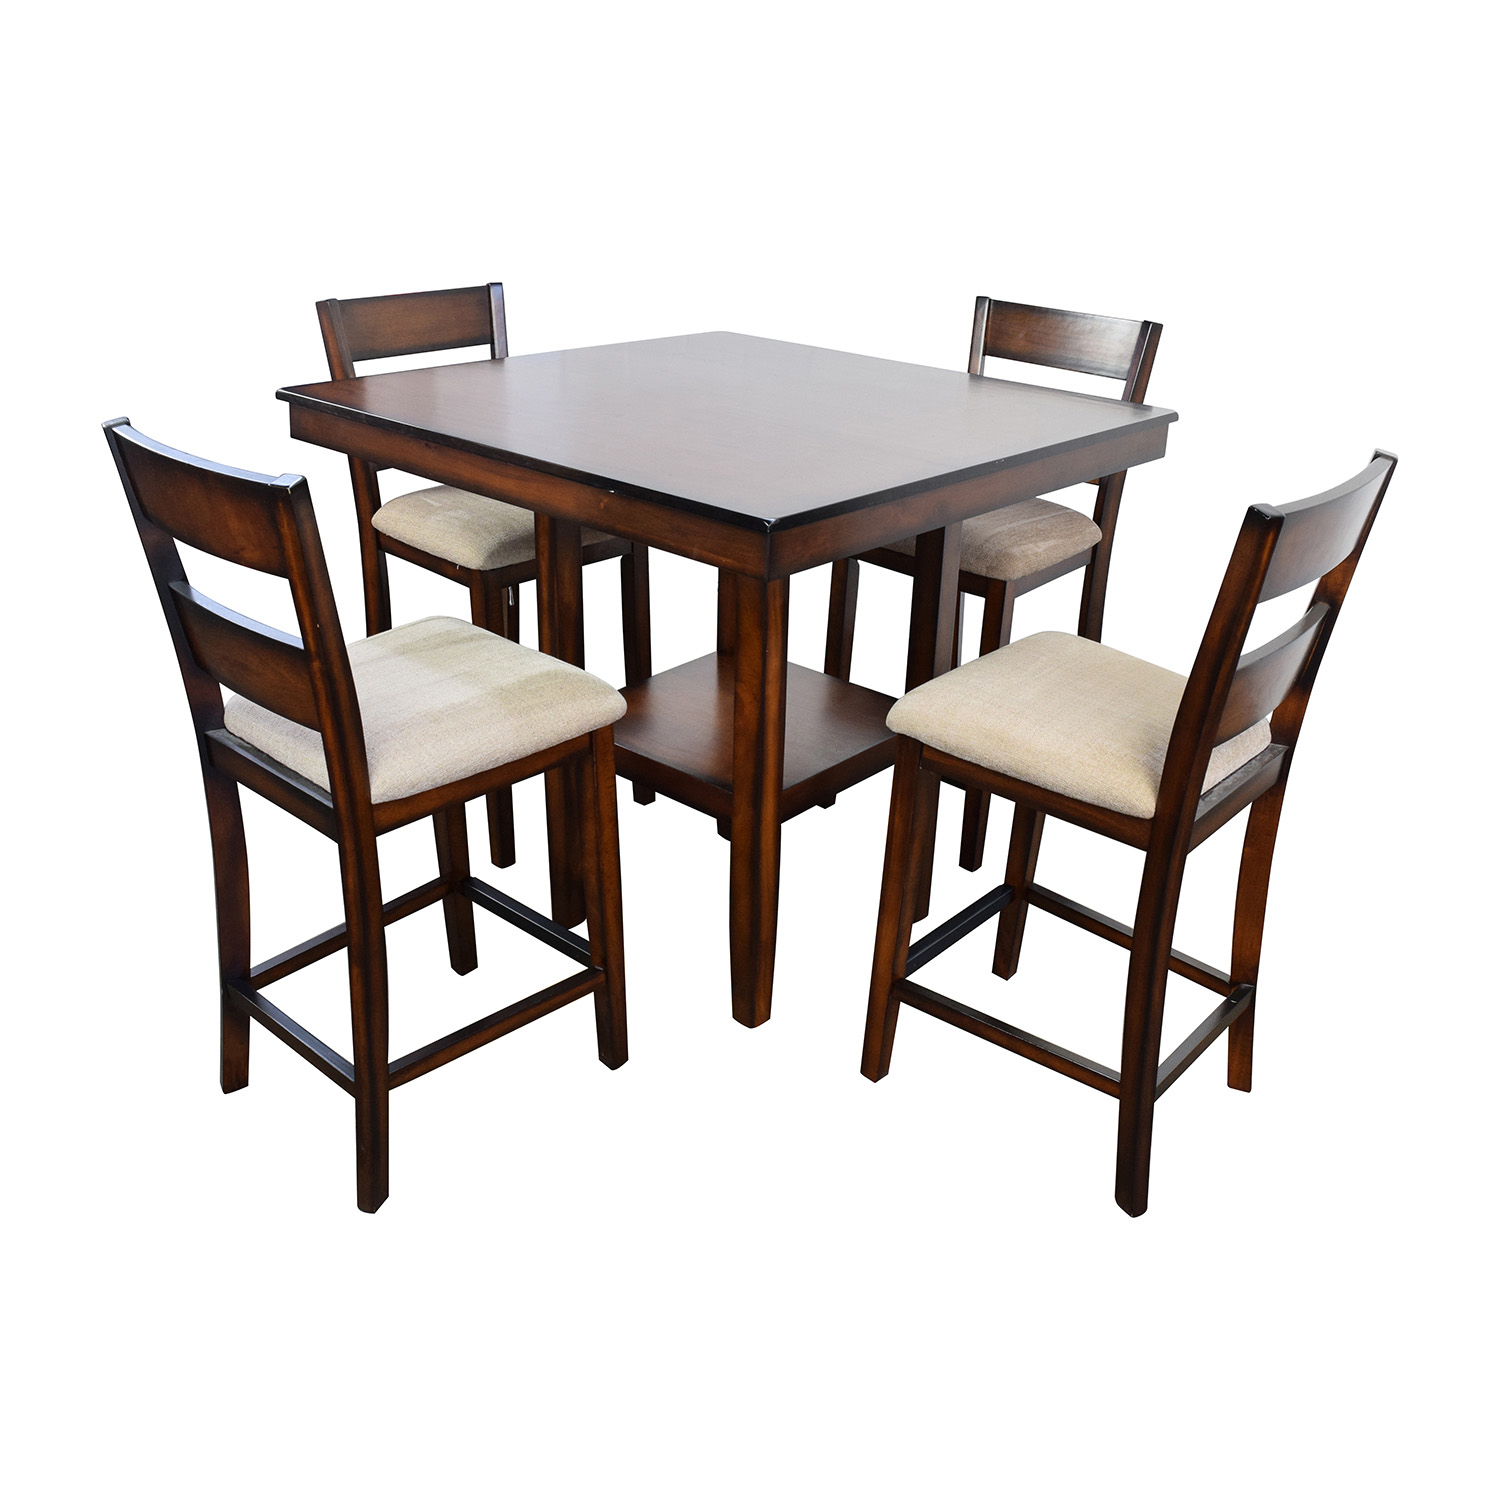 Magnificent 66 Off Macys Macys Branton 5 Pc Counter Height Dining Set Tables Forskolin Free Trial Chair Design Images Forskolin Free Trialorg